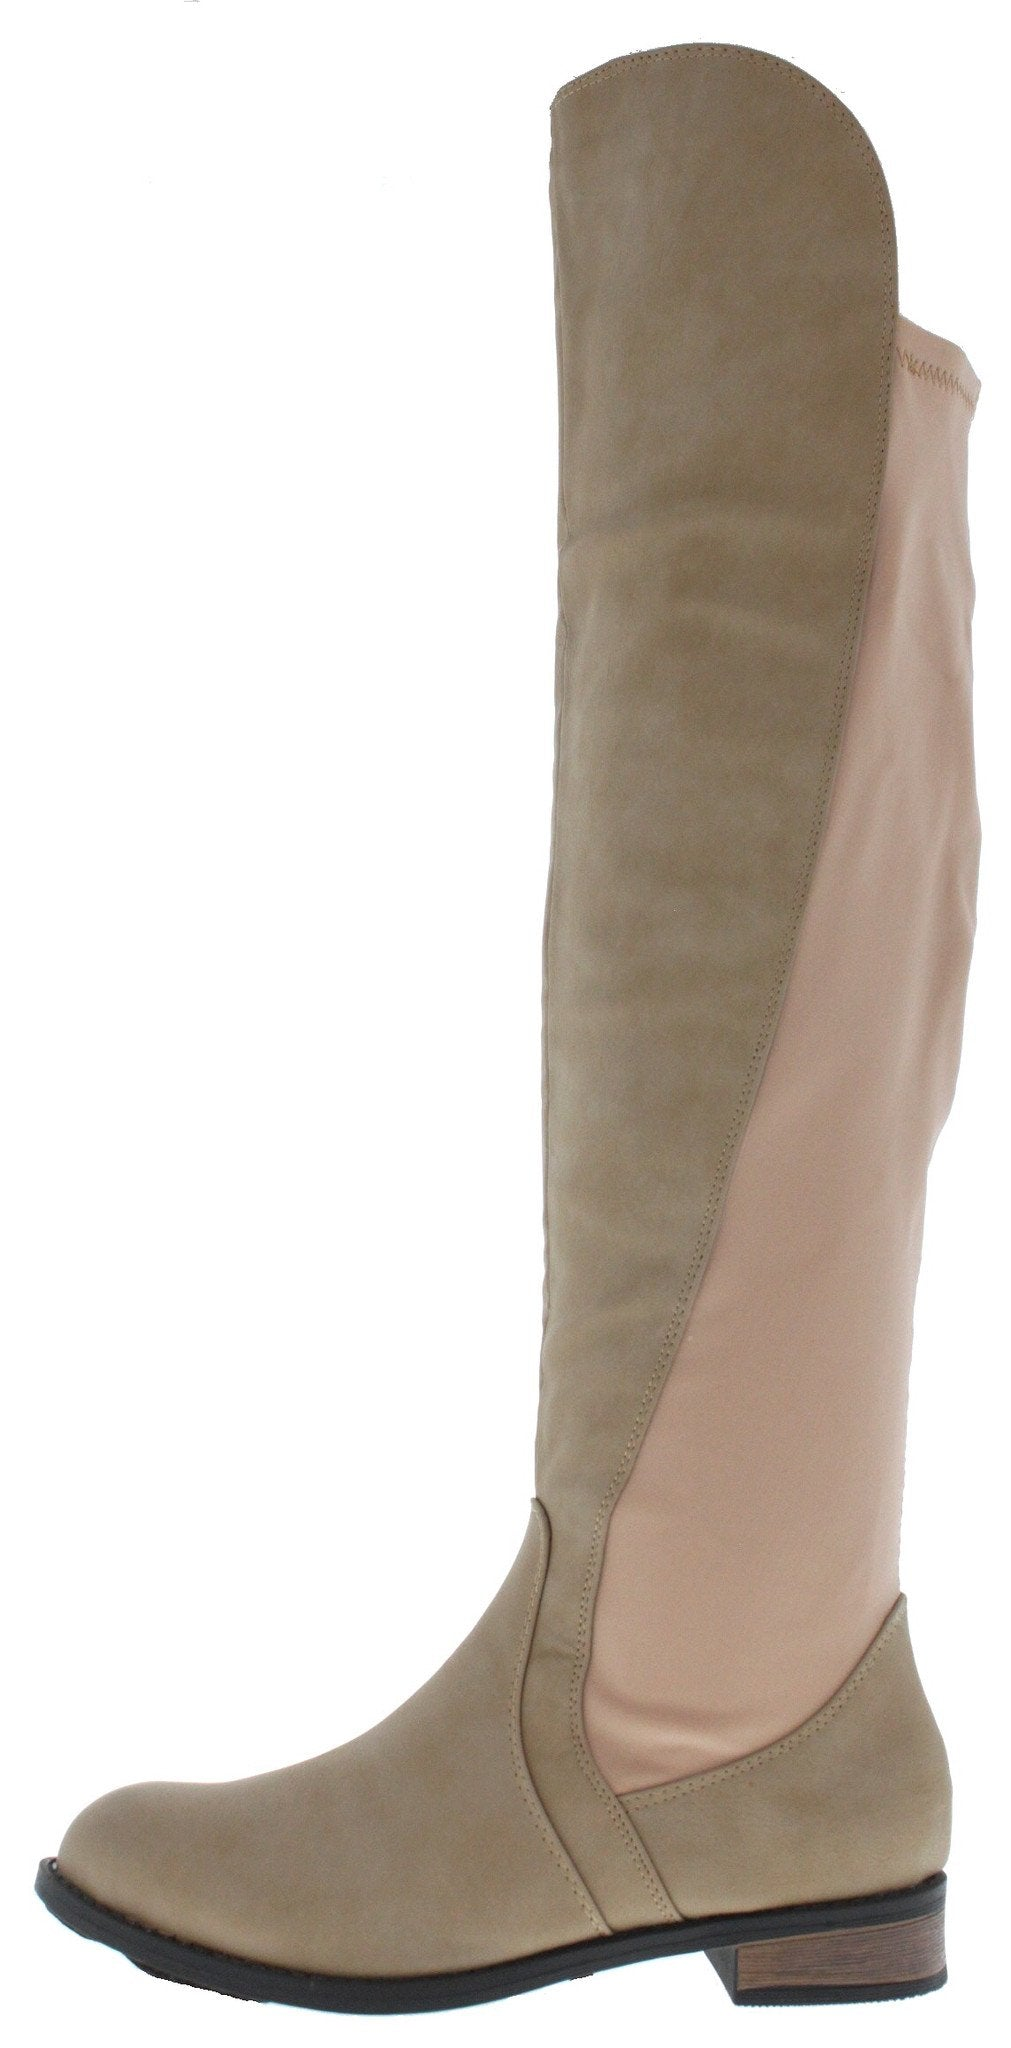 Moore1 Nude Back Panel Riding Boot